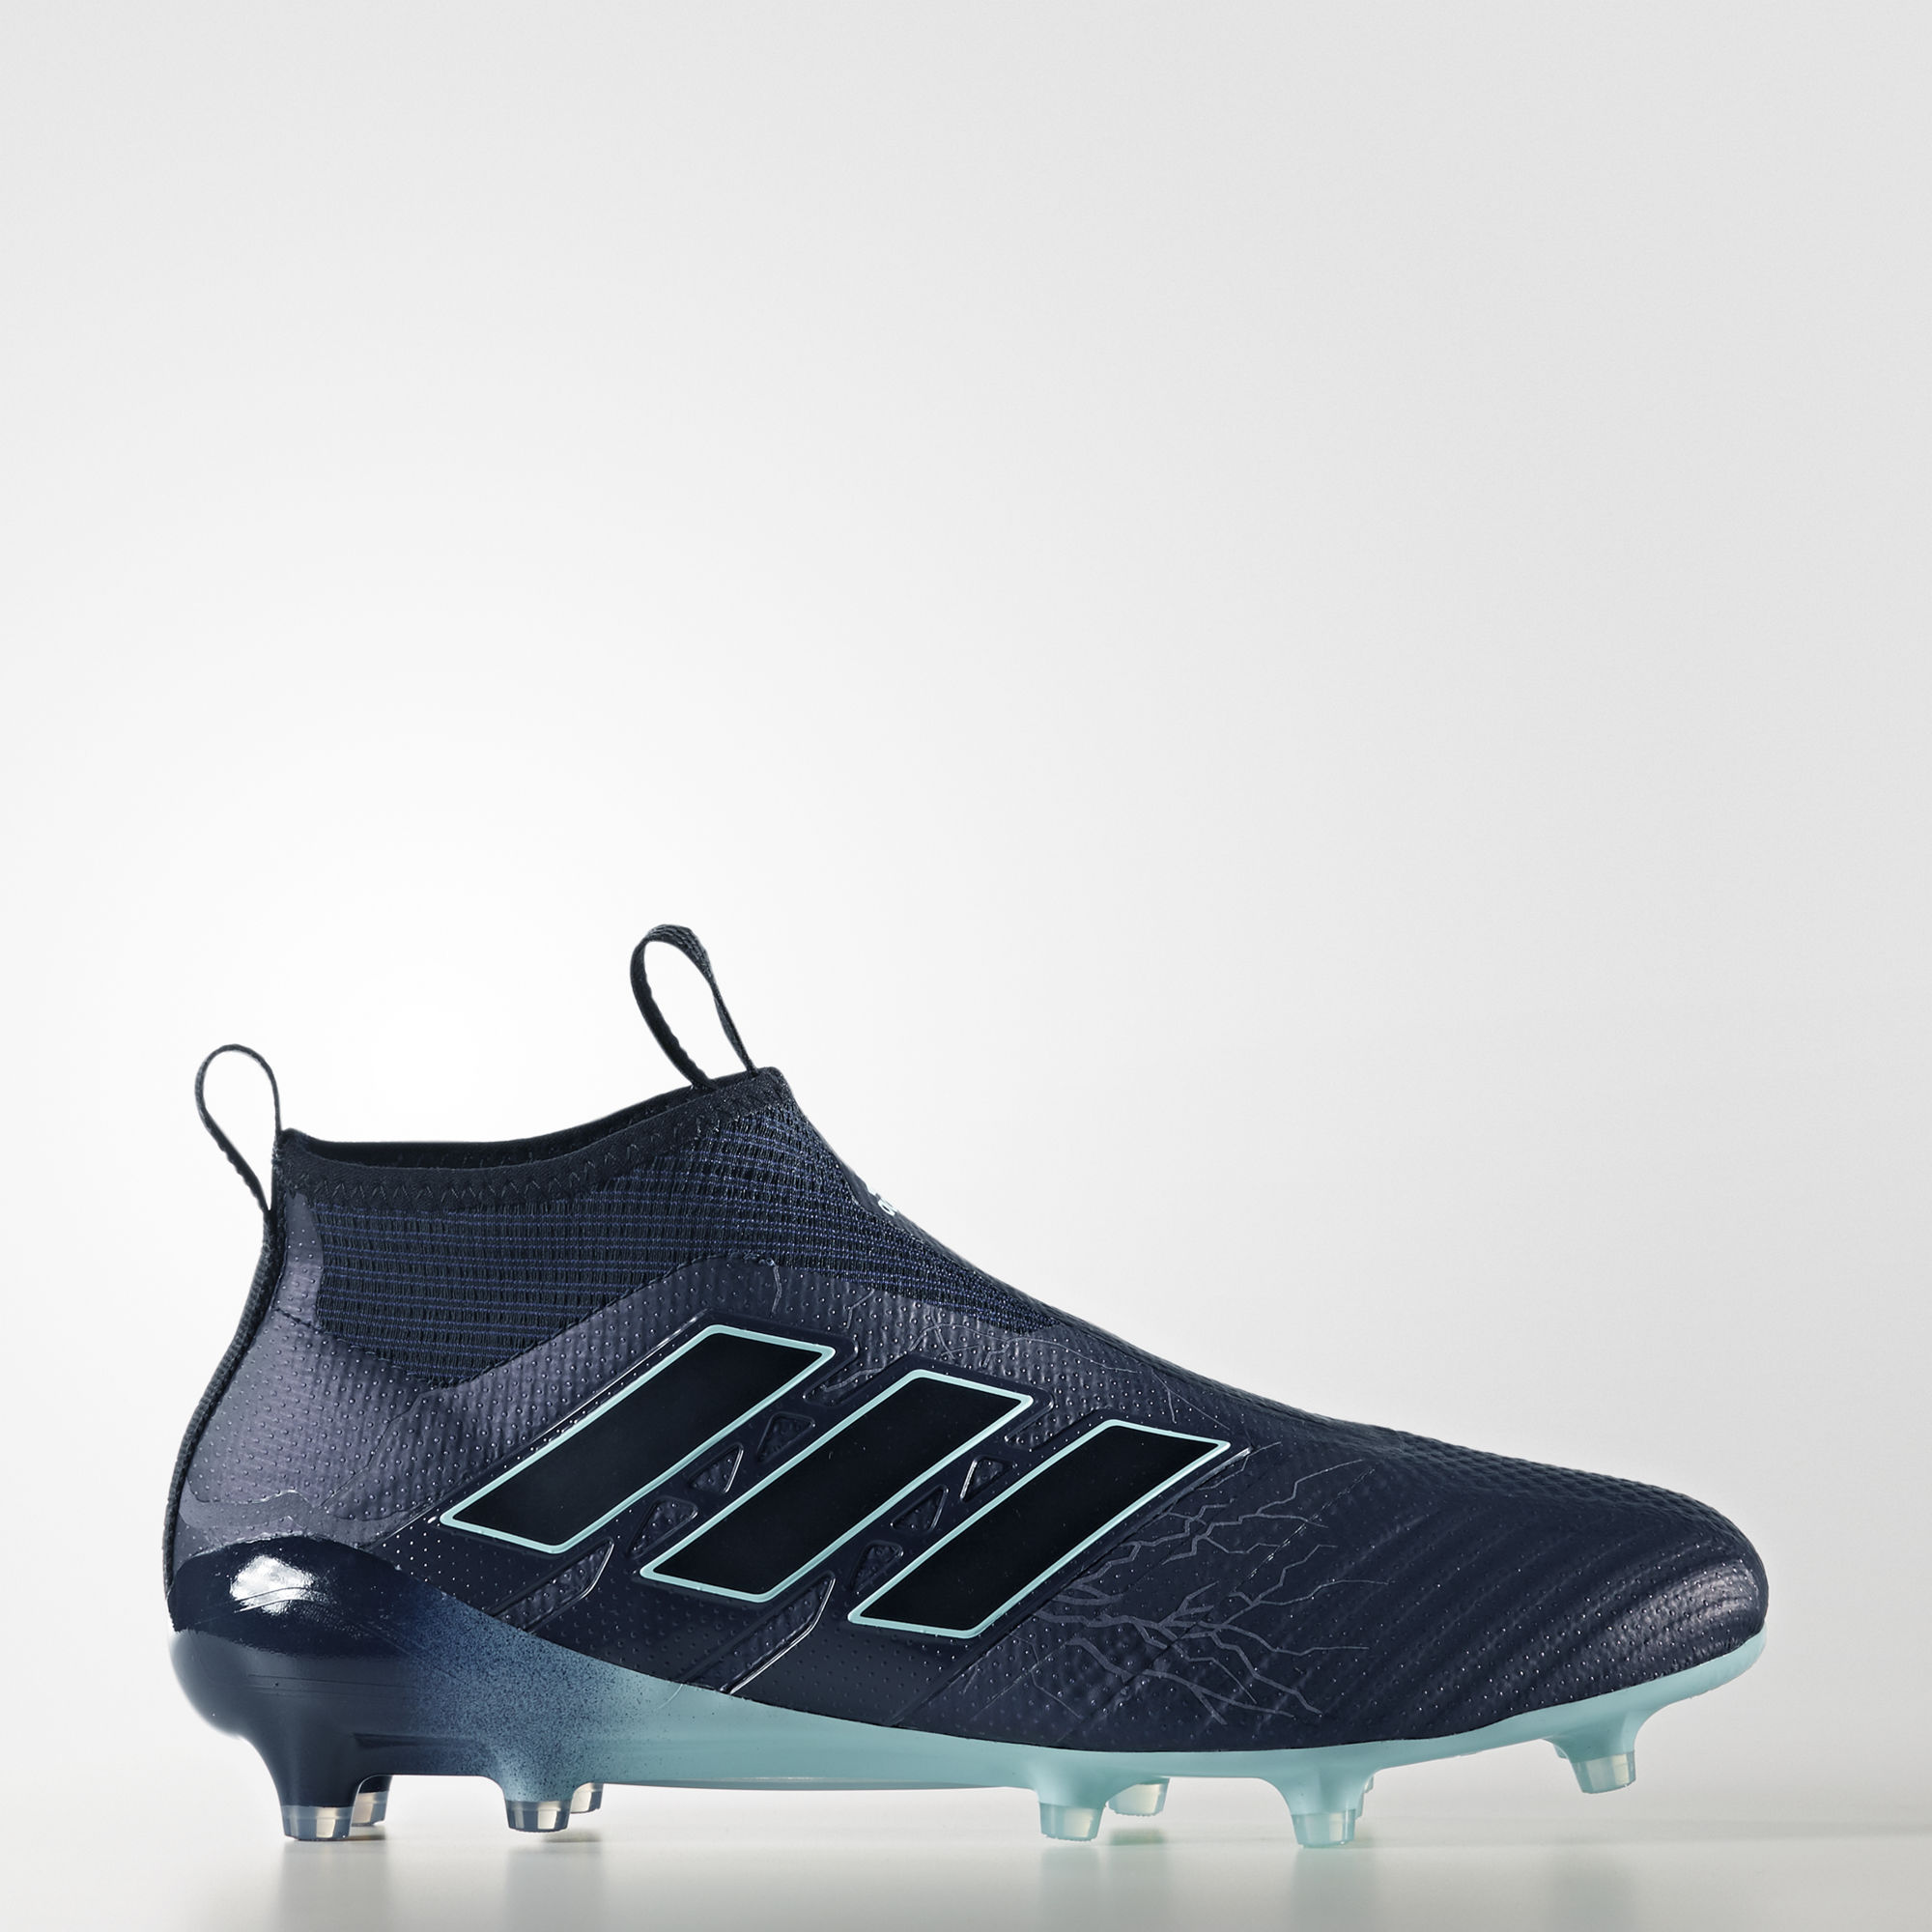 ce08a1ed2 Click to enlarge image  adidas_ace_17_purecontrol_fg_thunder_storm_legend_ink_core_black_energy_aqua_a.jpg  ...